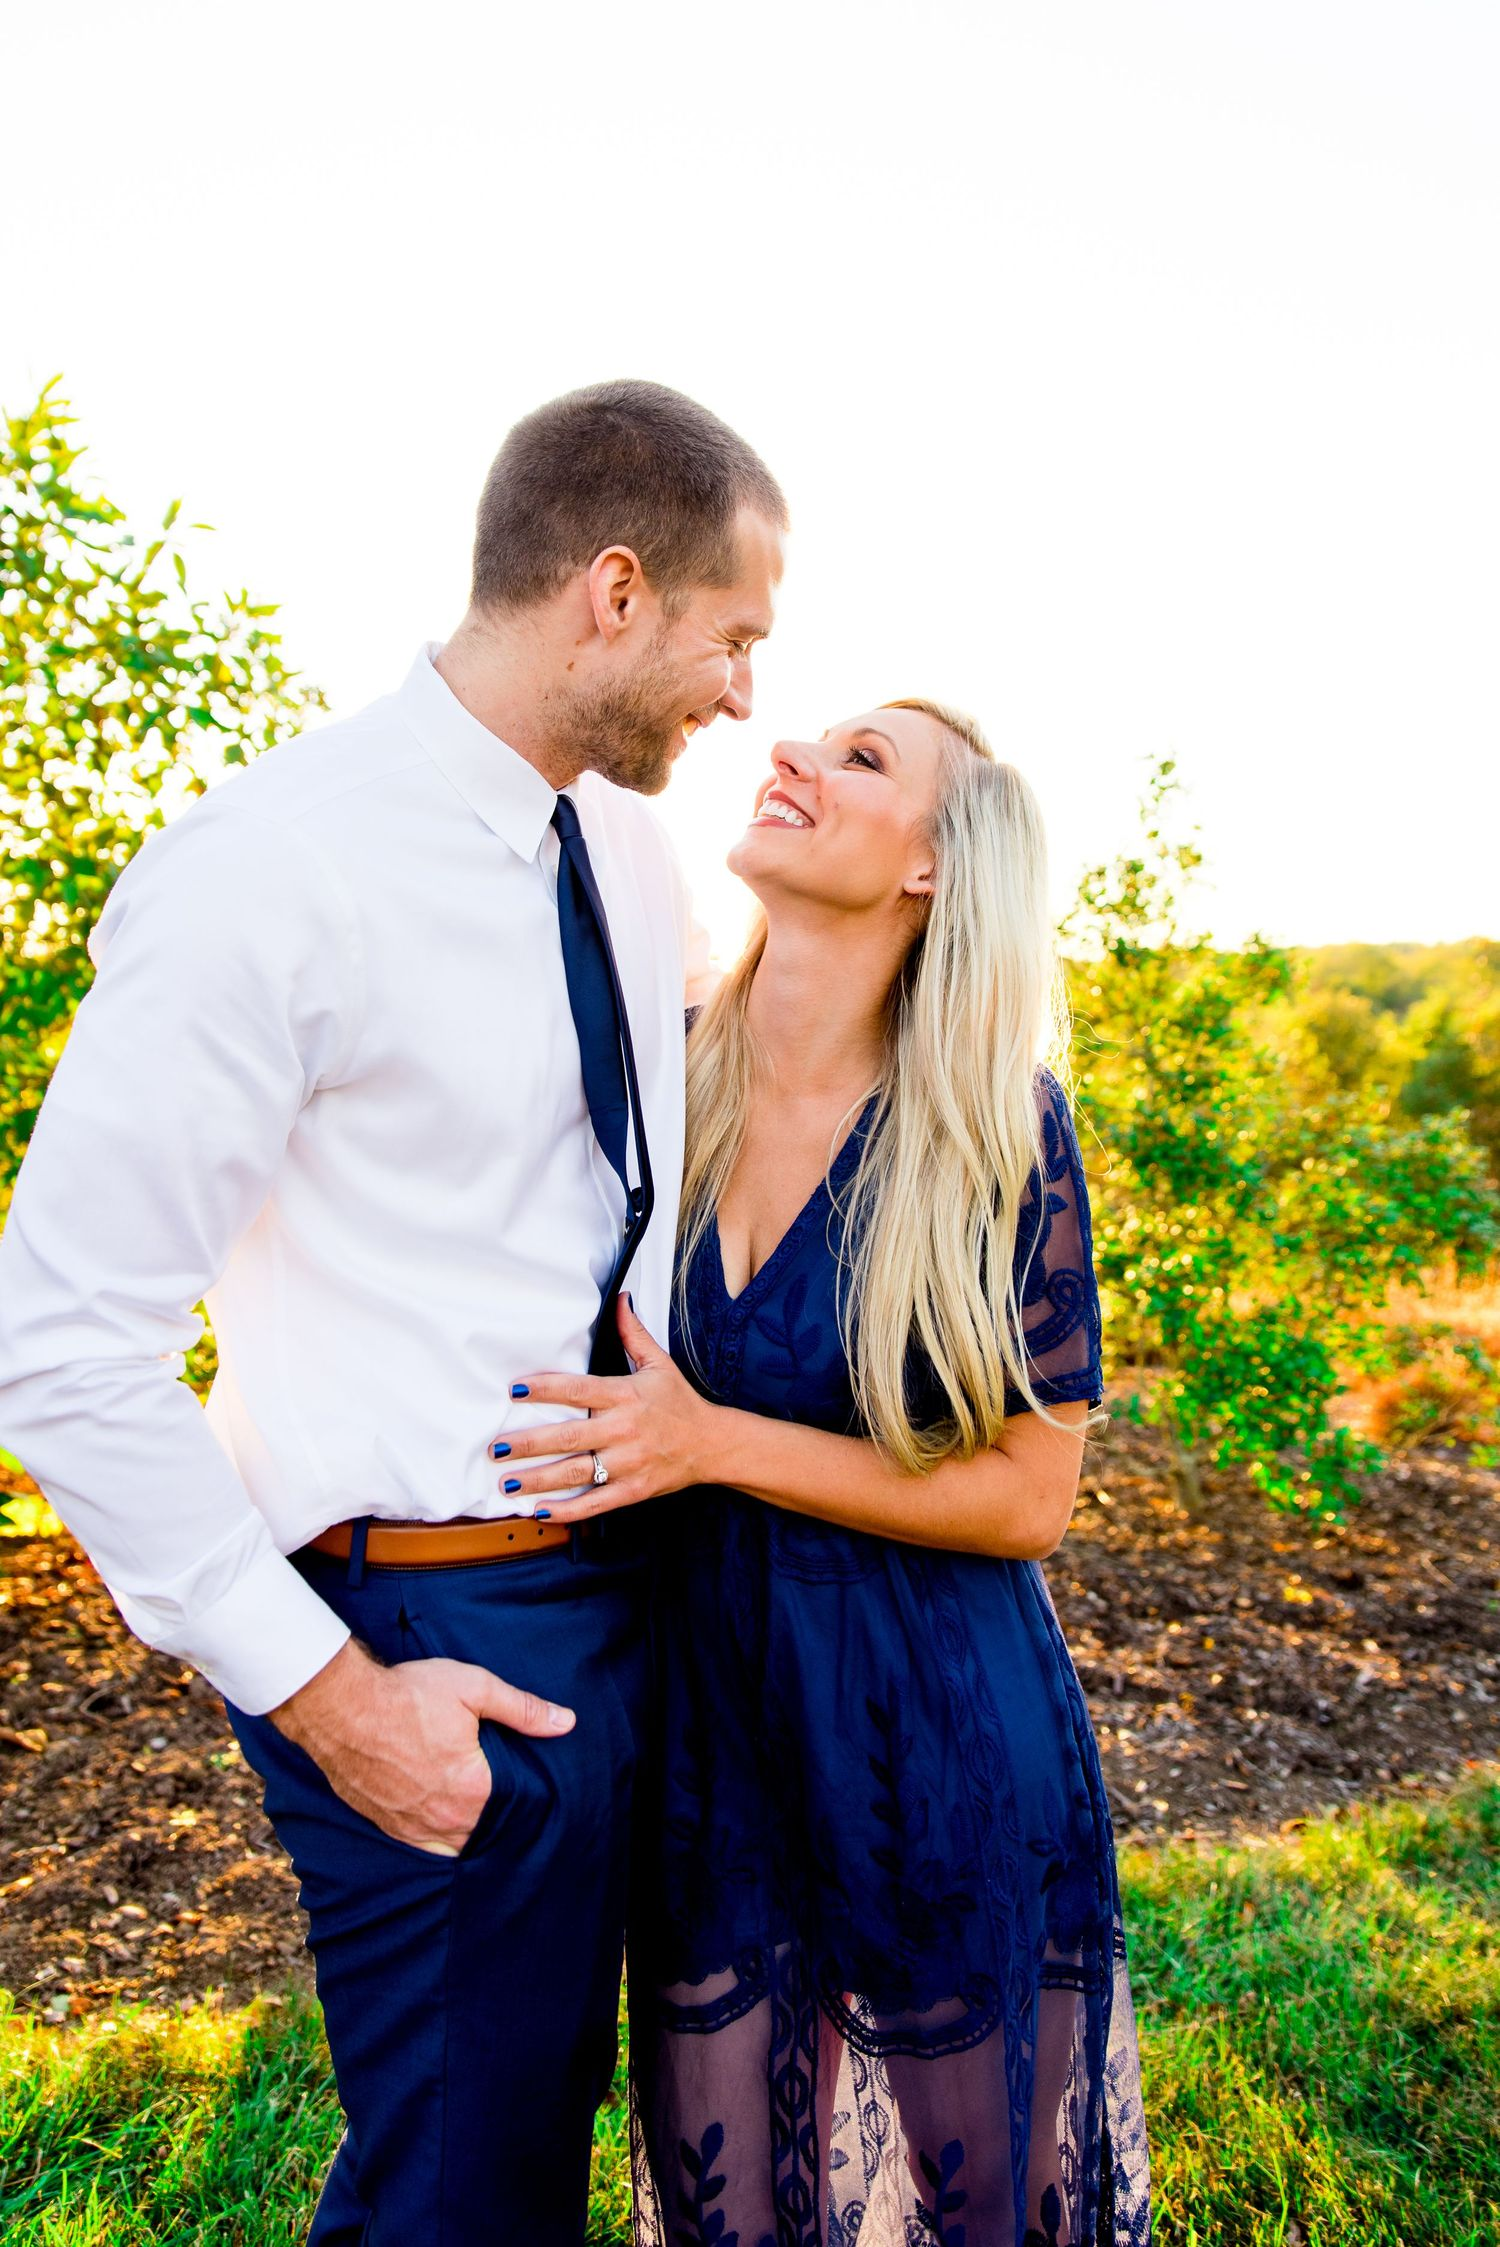 woman with long blonde hair in navy dress smiles at husband in white shirt and navy pants and tie